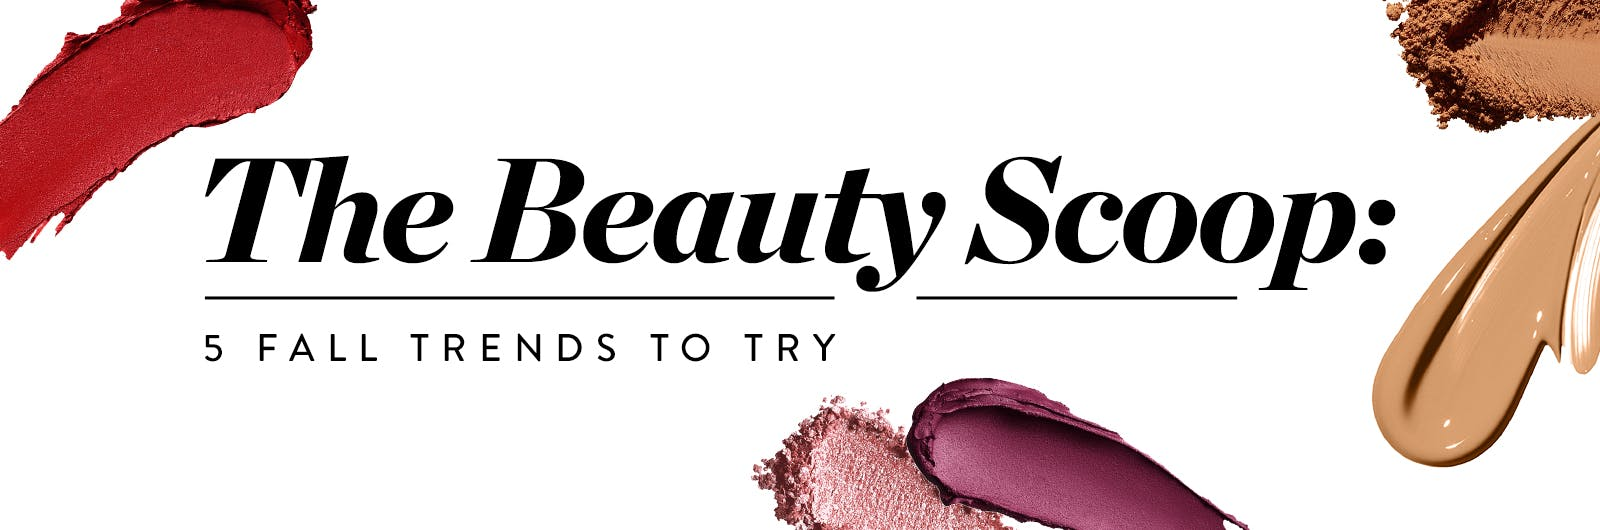 fall beauty trends deskop